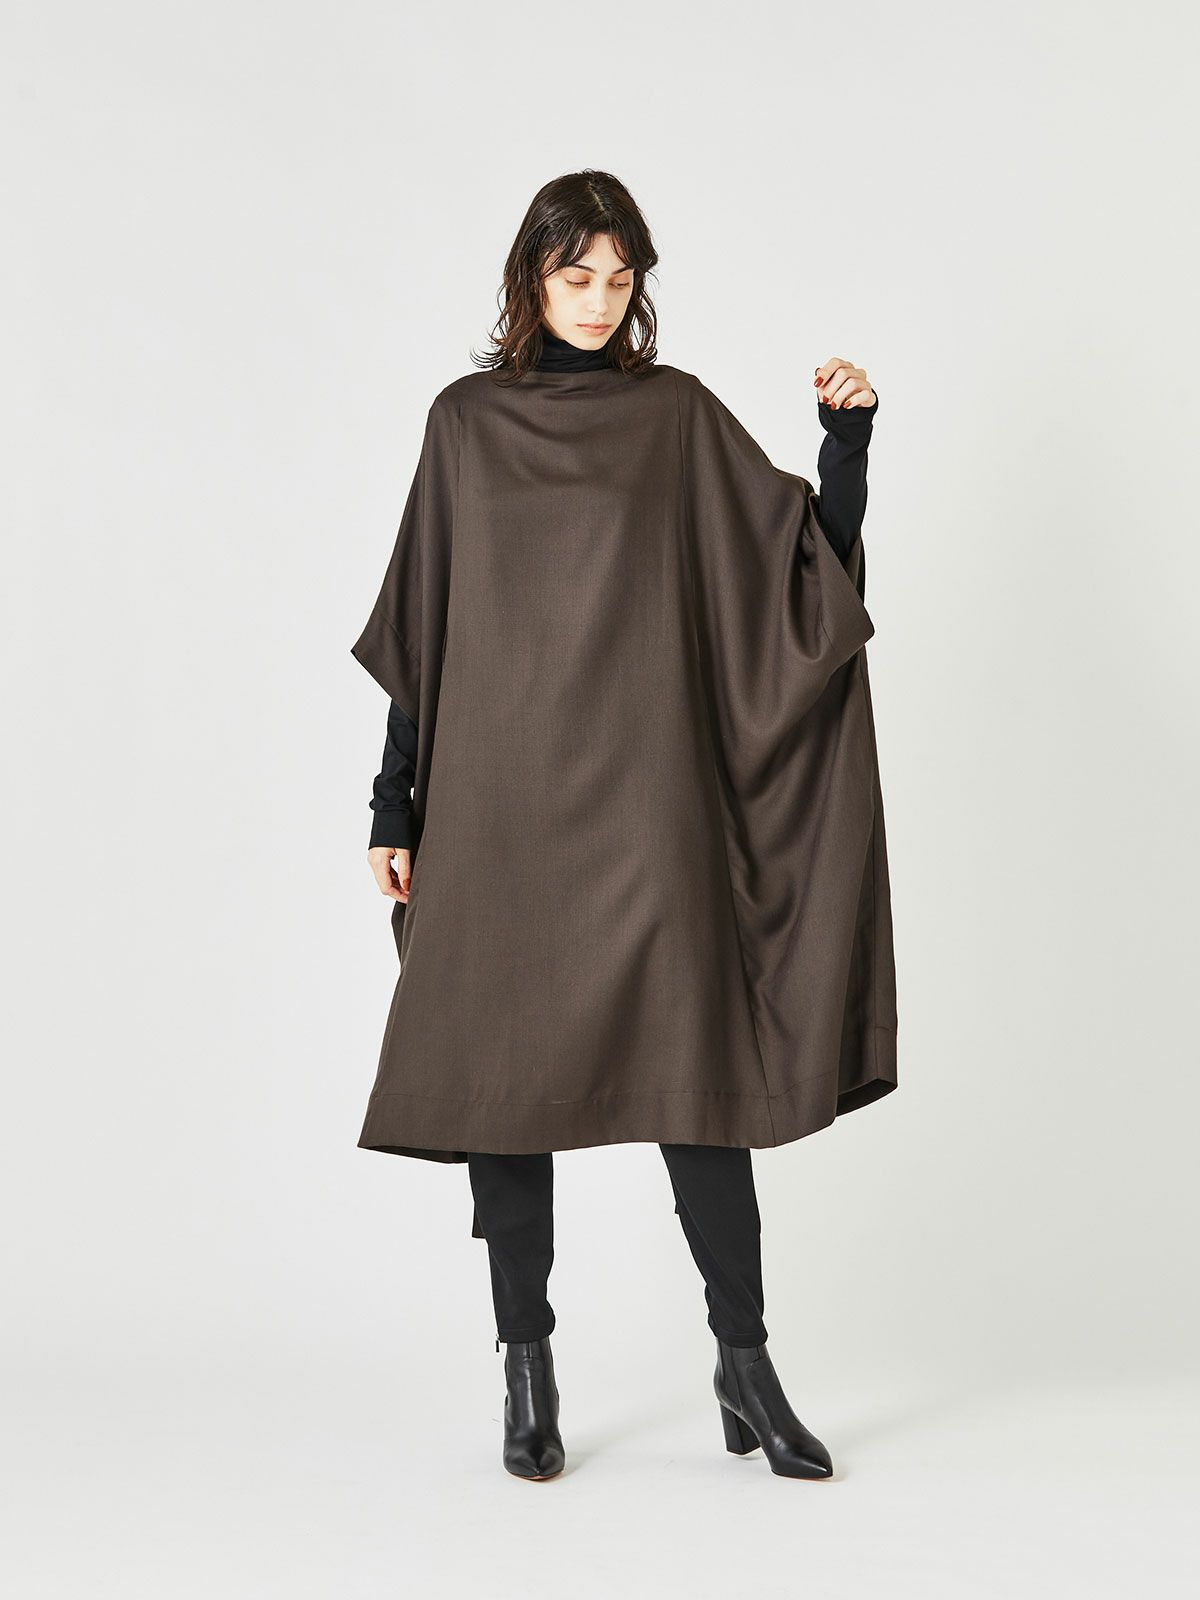 poncho OP with belt   /  brown 44